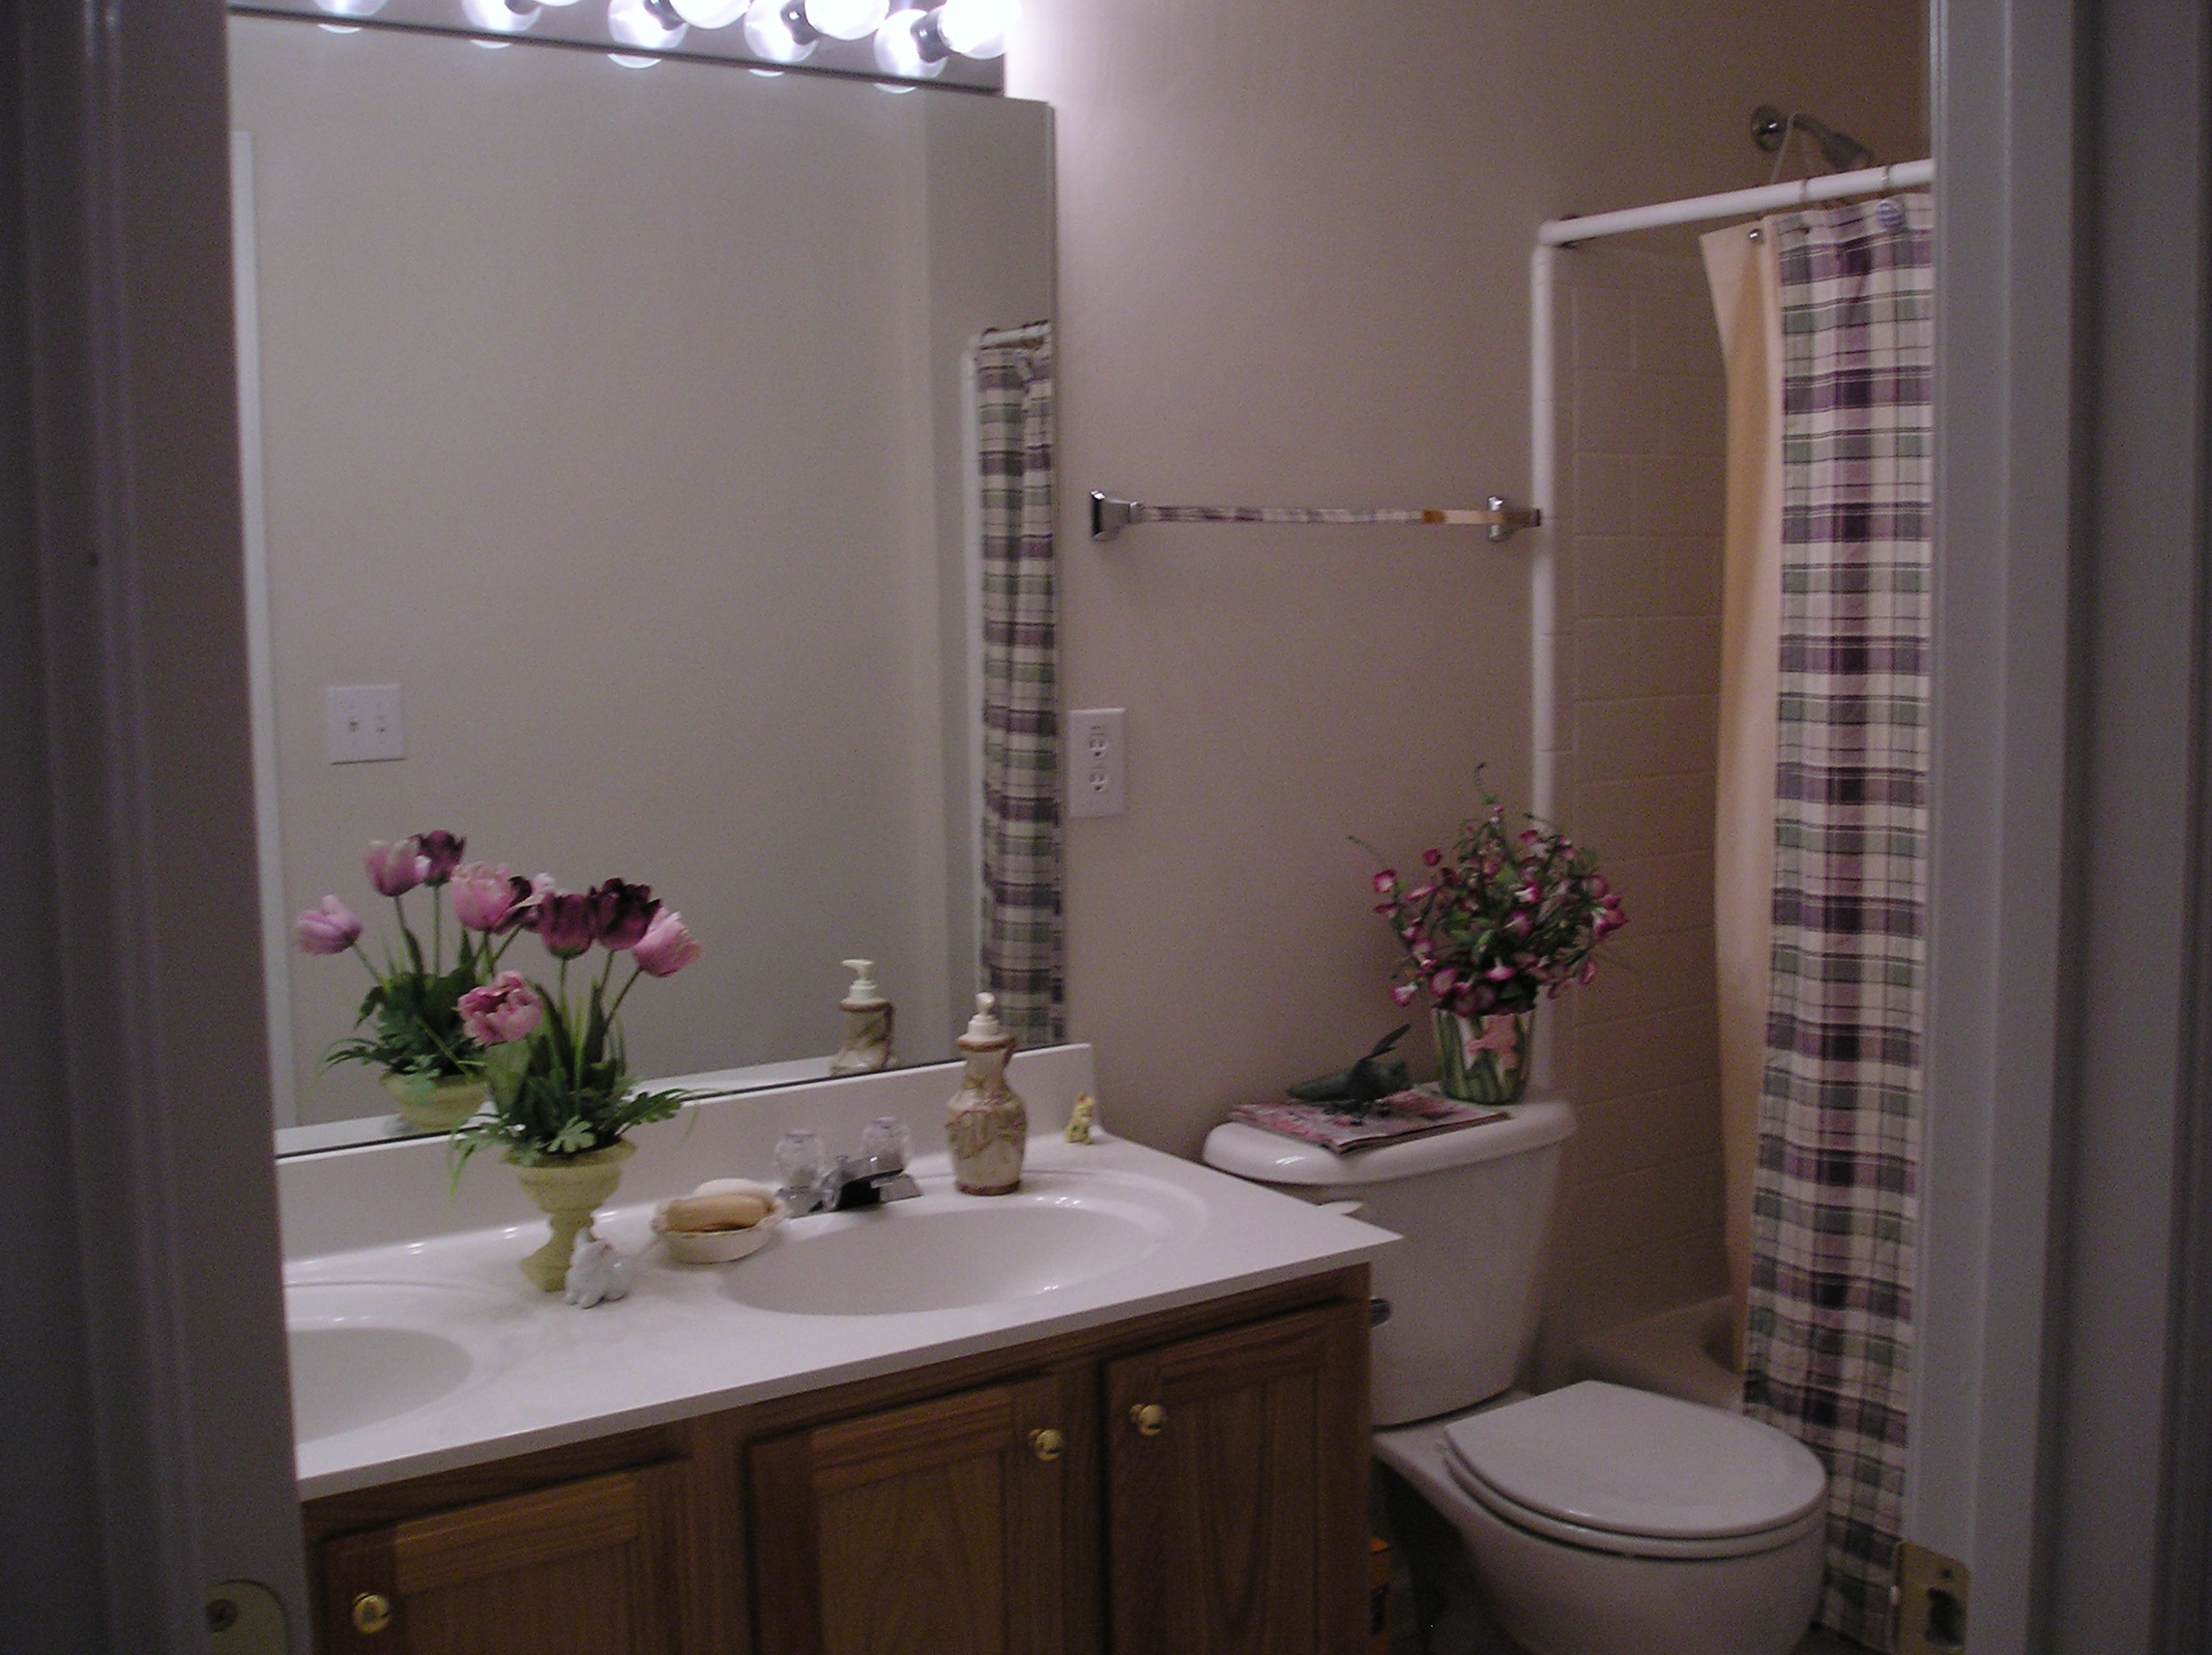 Bathroom picture is from my 1st home.